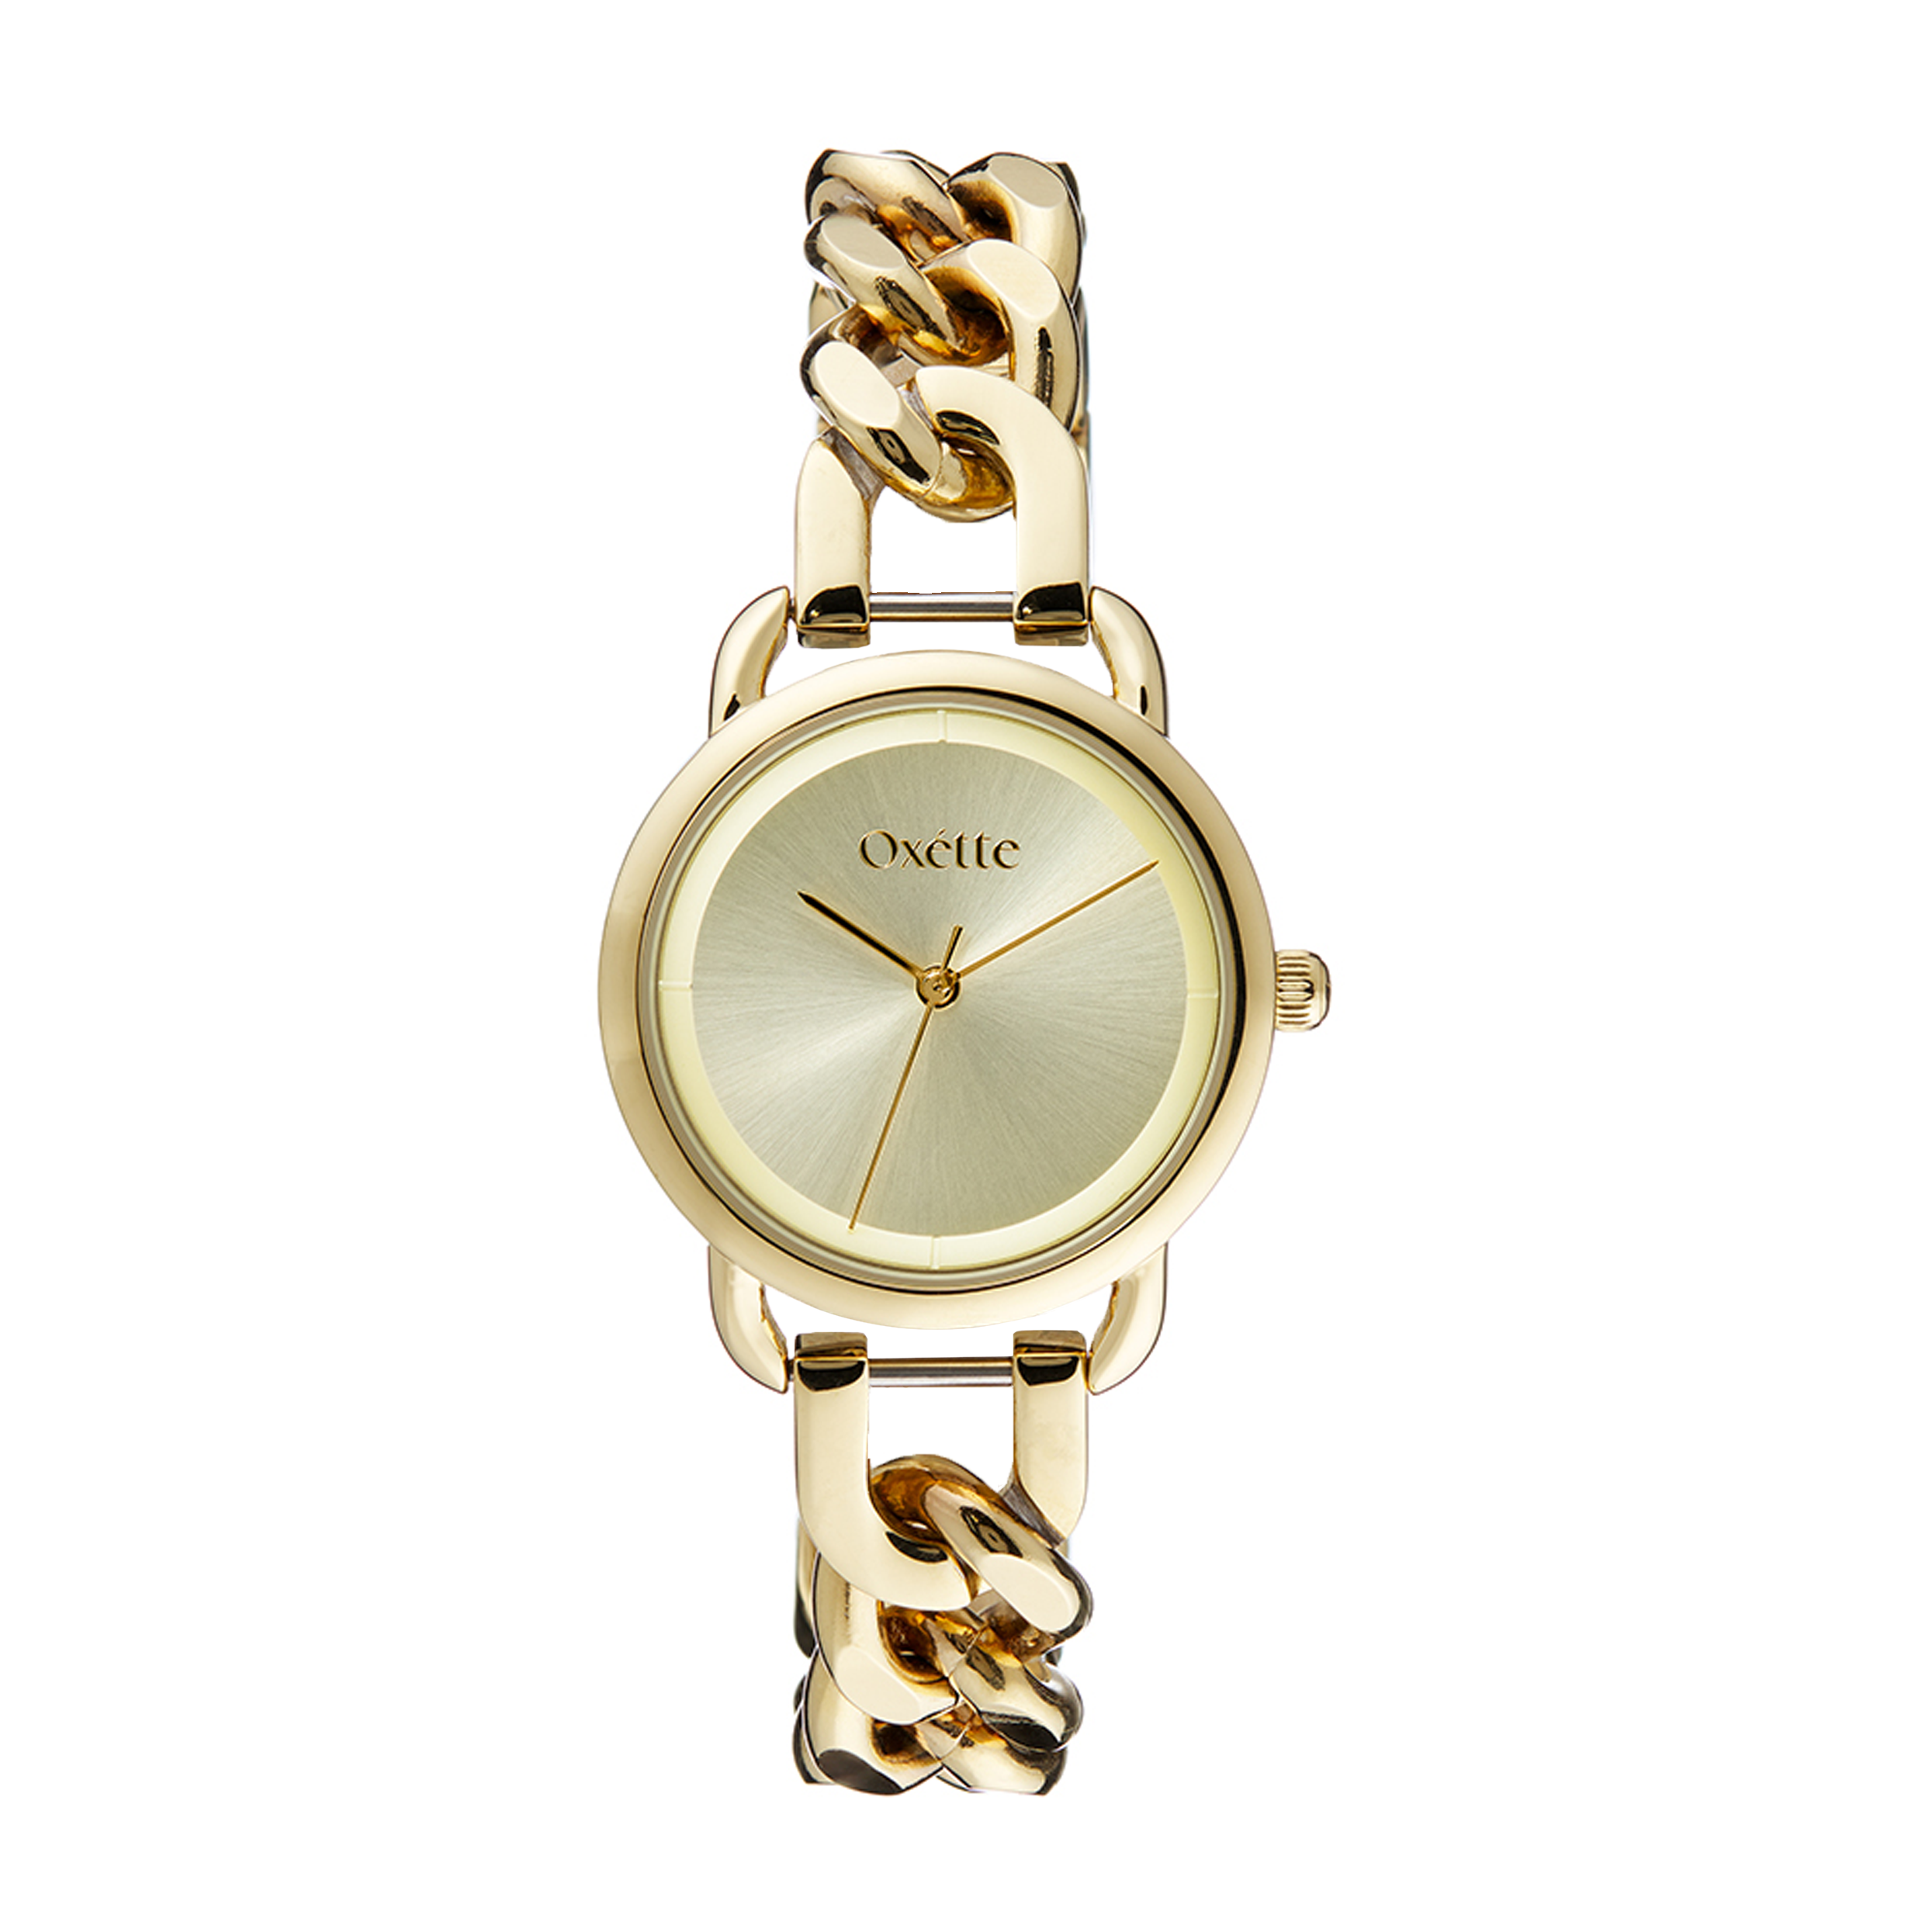 11X05-00536 Oxette Link Watch